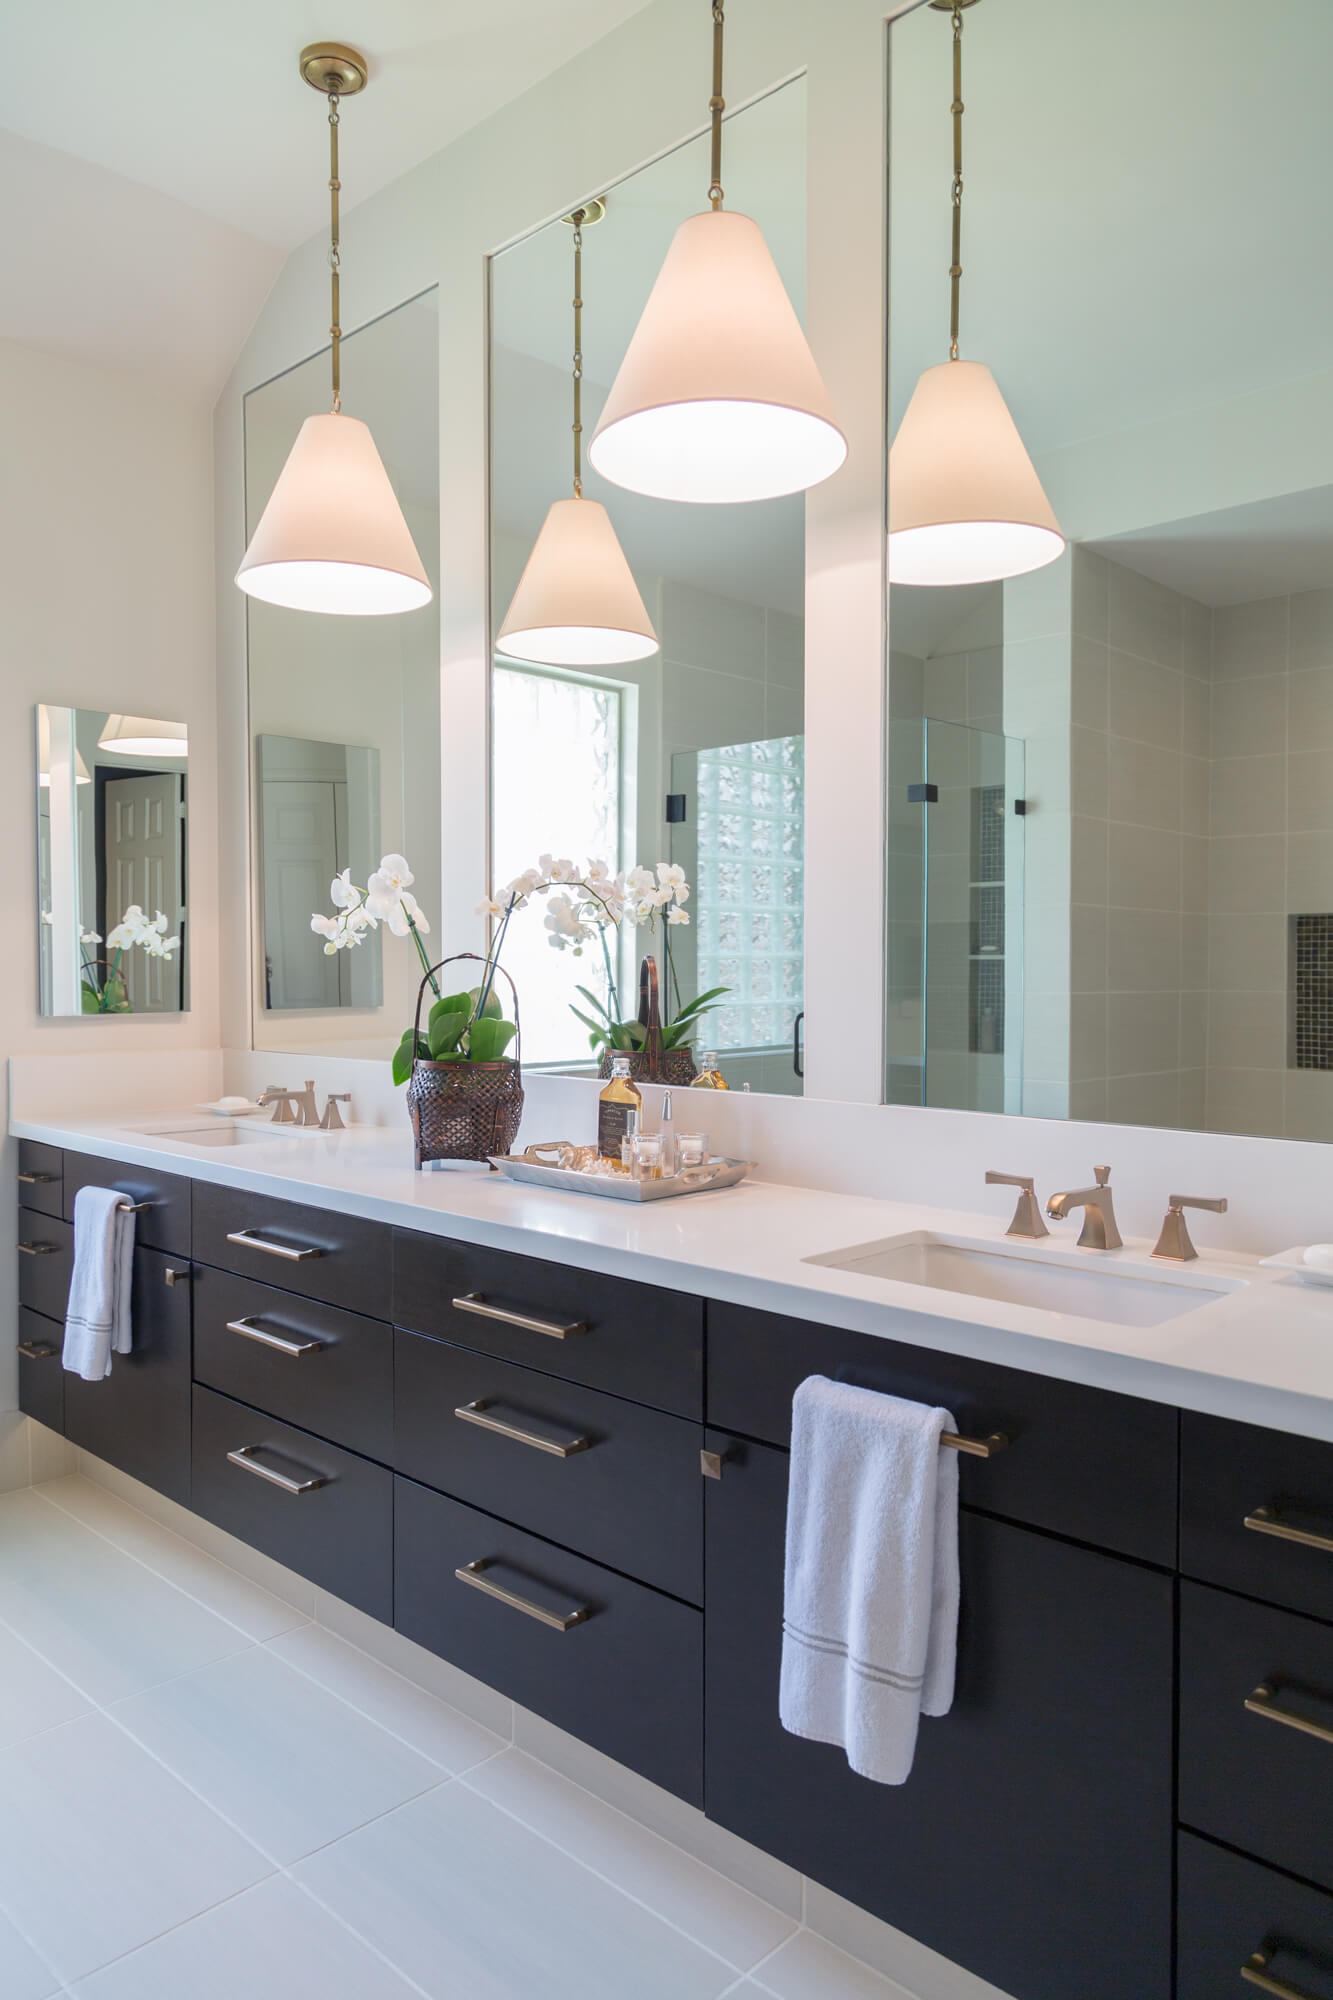 Floating linear look bathroom vanity in an espresso stain gives an open and more modern look in this remodel. Carla Aston, Designer | Tori Aston, Photographer #floatingvanity #bathroomdesignideas #modernbathroom